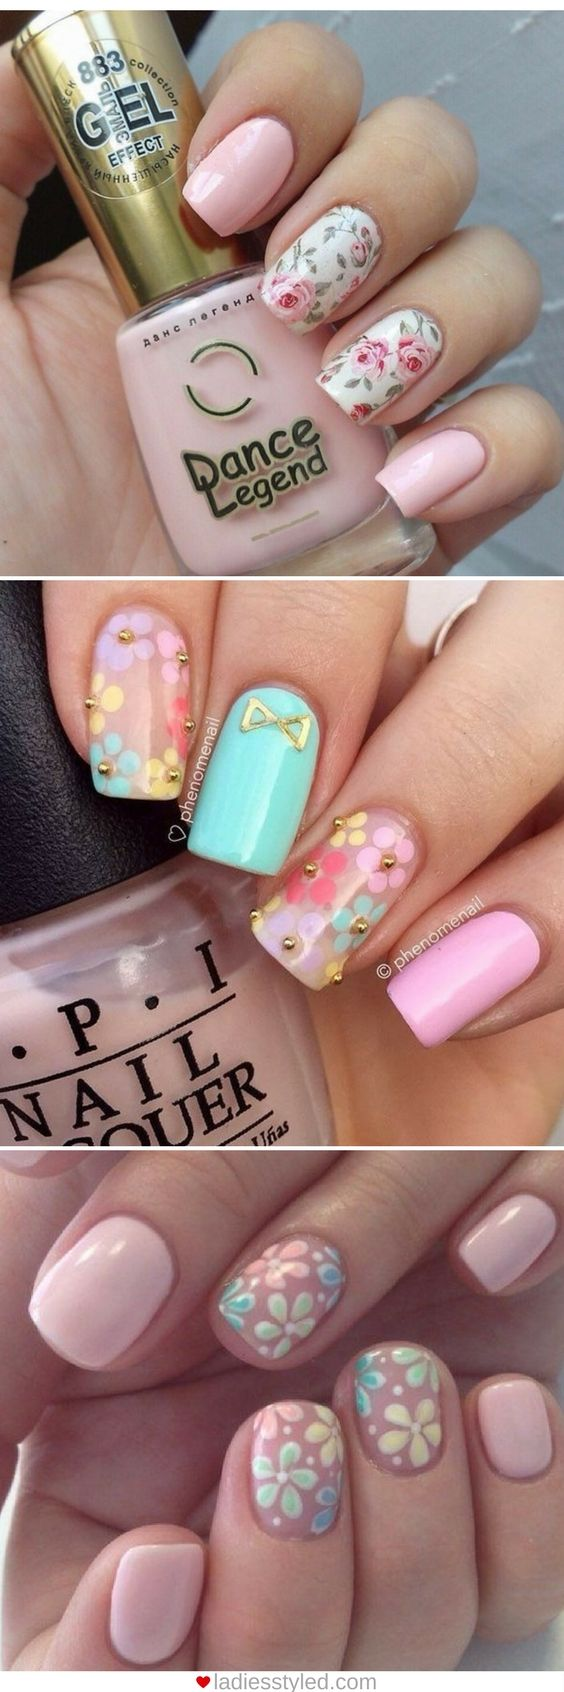 get inspired with these beautiful nail art designs and ideas